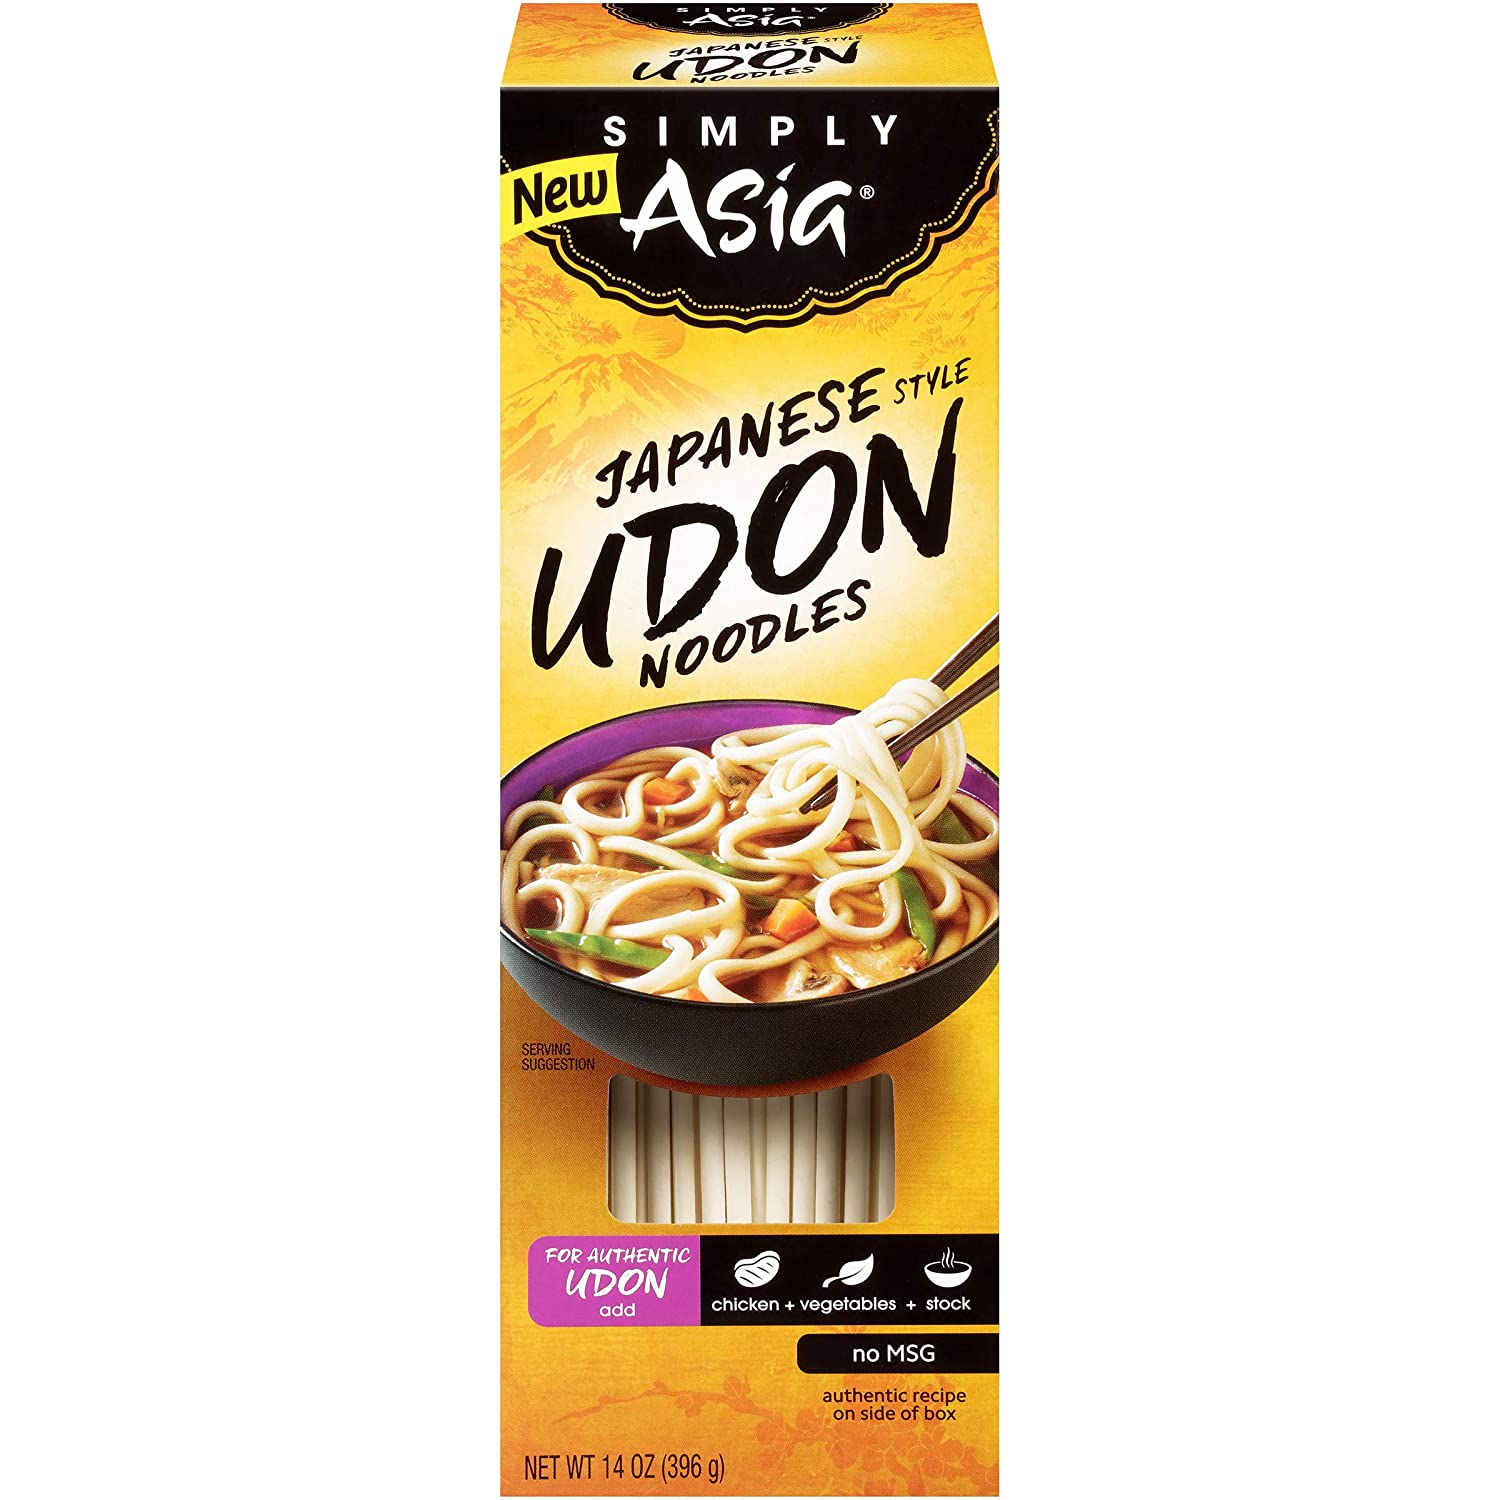 Simply Asia Japanese Style Udon Noodles, 14 oz Pack of 6